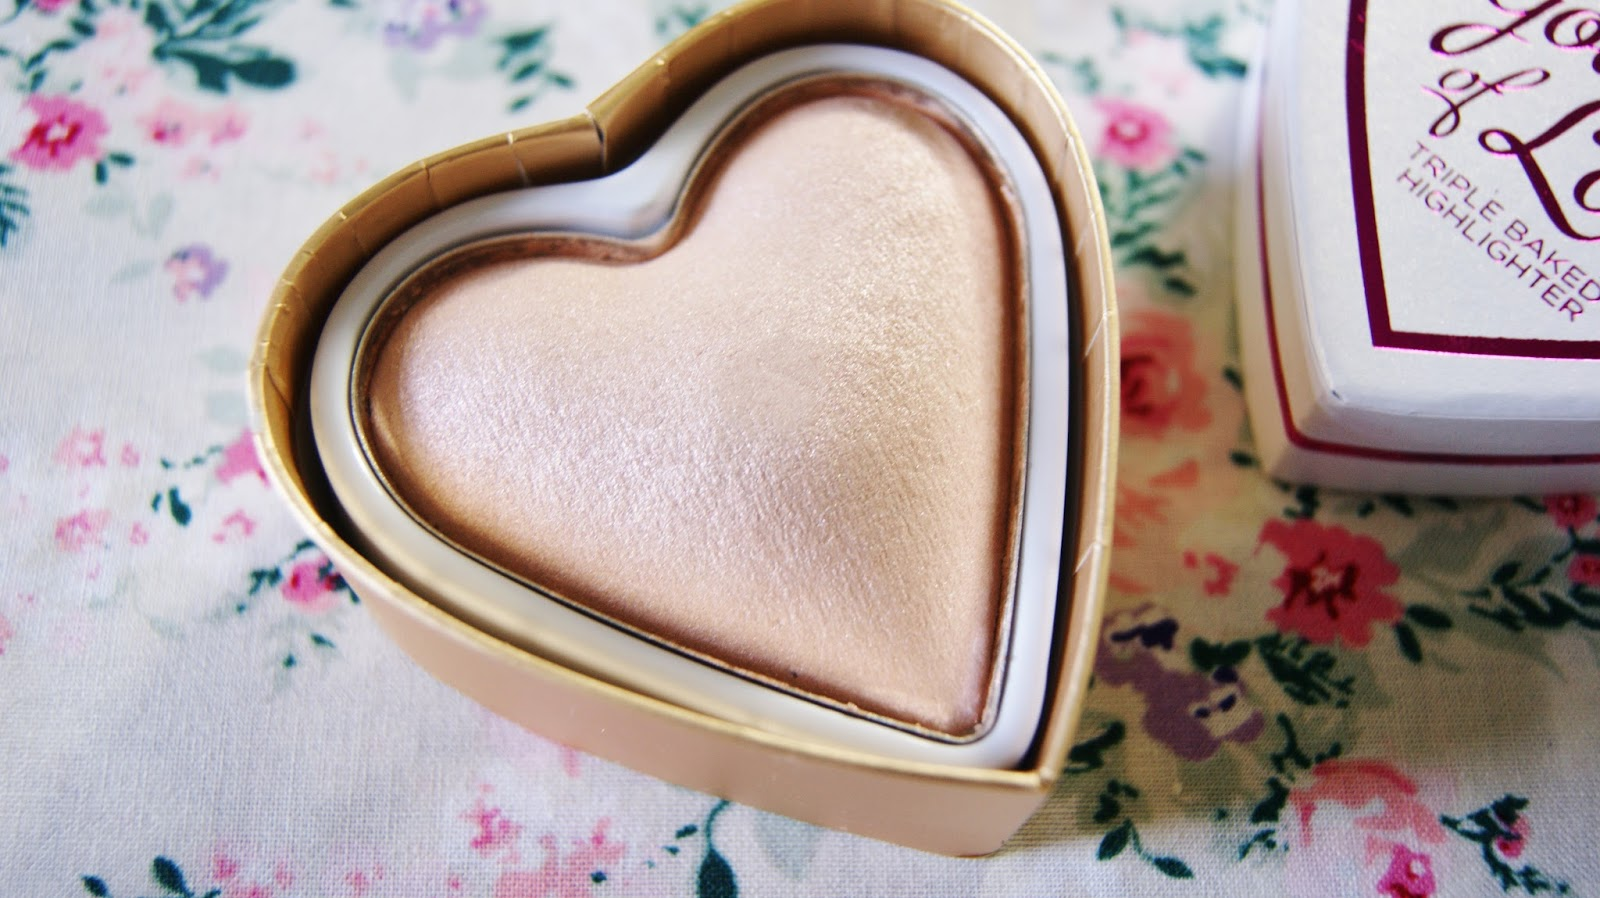 I Heart Makeup Goddess of Love Highlighter Close-Up